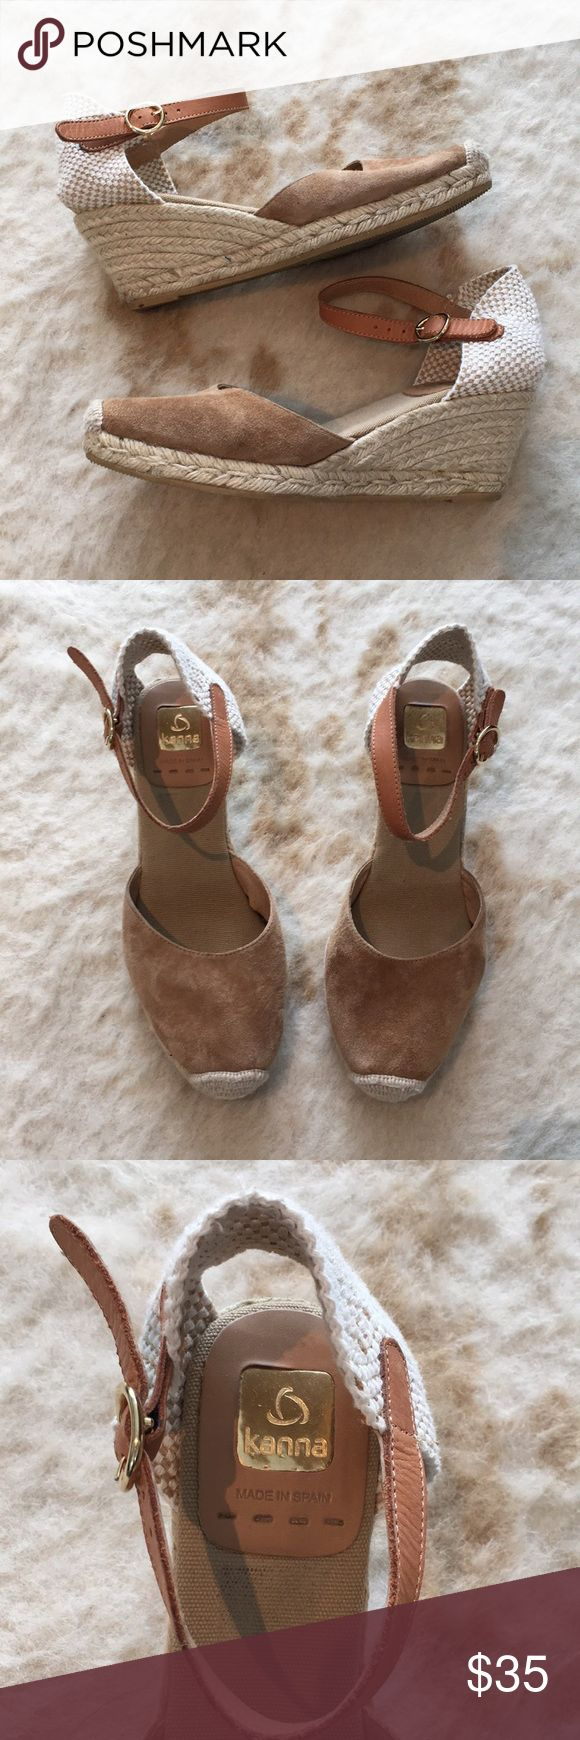 KANNA Closed Toe Espadrilles Wedge Shoes Sz 40 Made in Spain. Nice preowned condition. Perfect for spring/summer! kanna Shoes Wedges